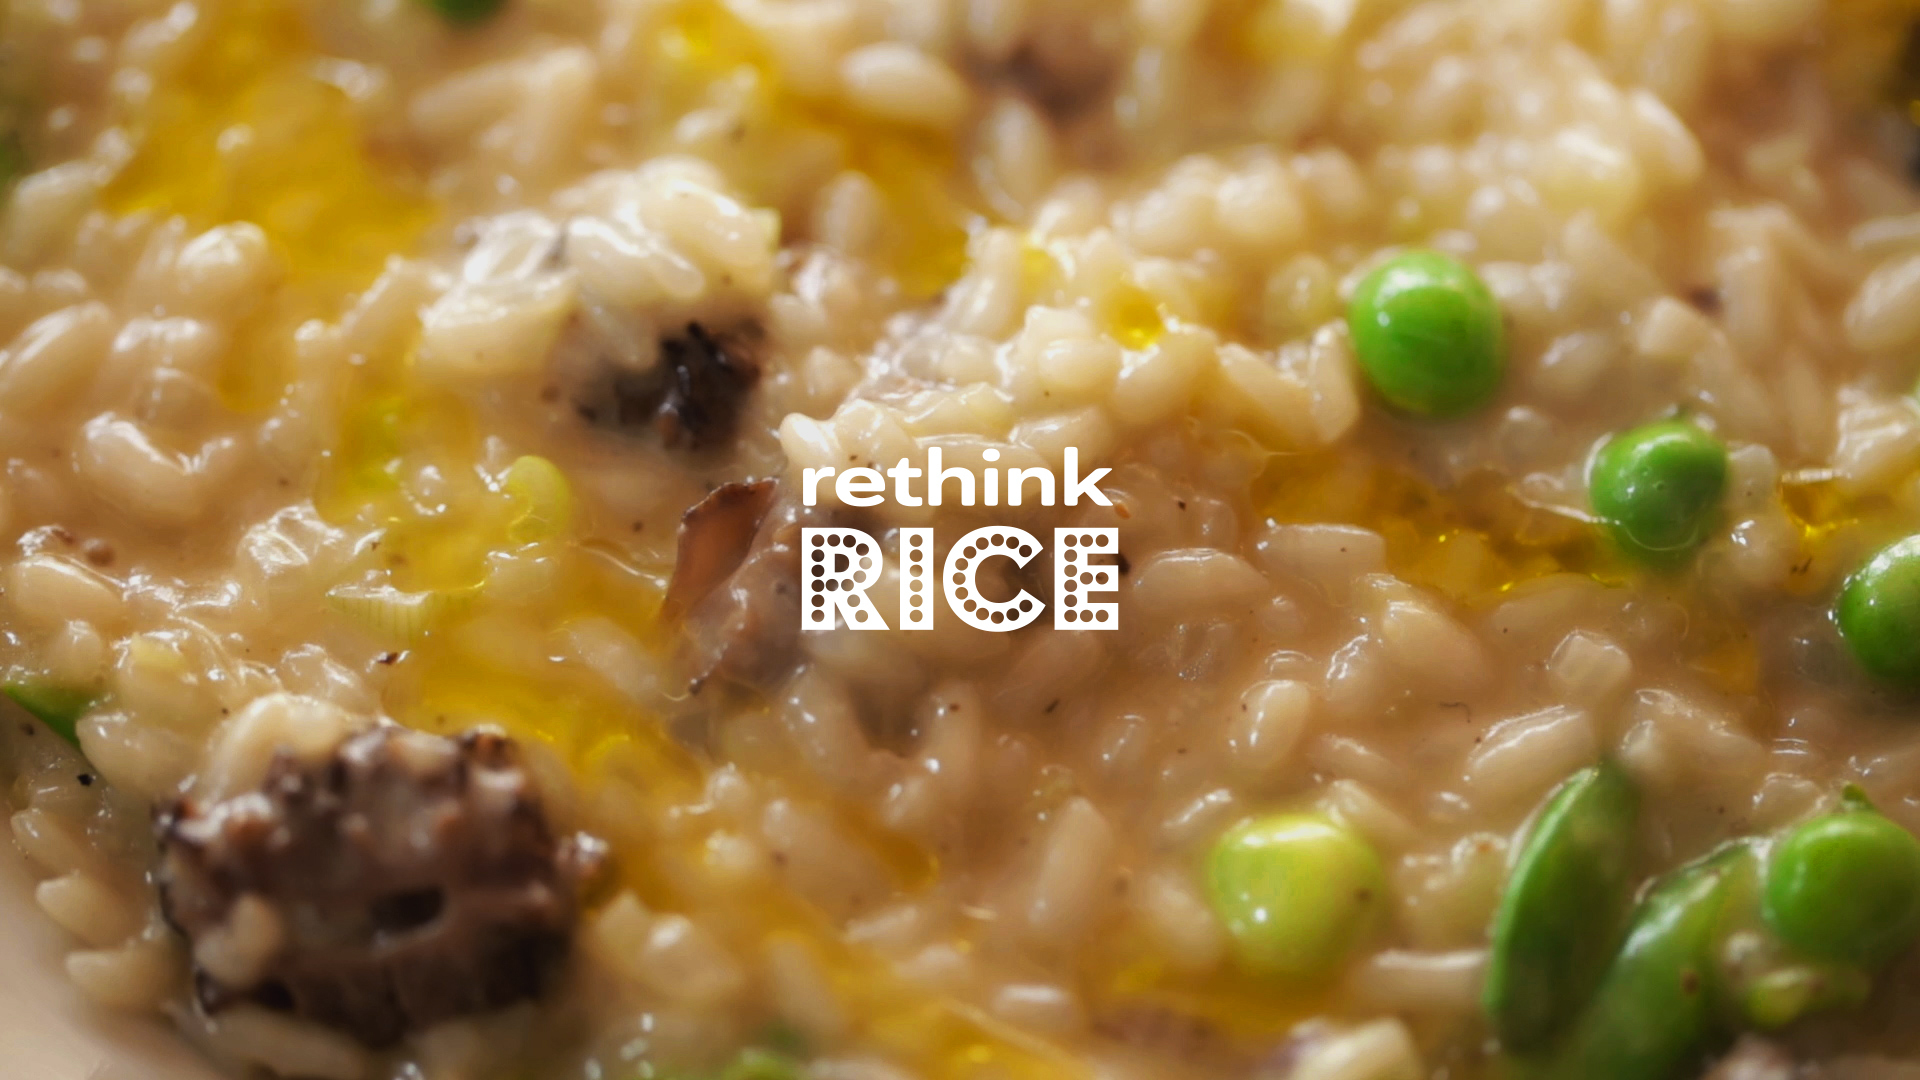 Sweet Pea and Morel Risotto with Chef Chris Cosentino | Rethink Rice